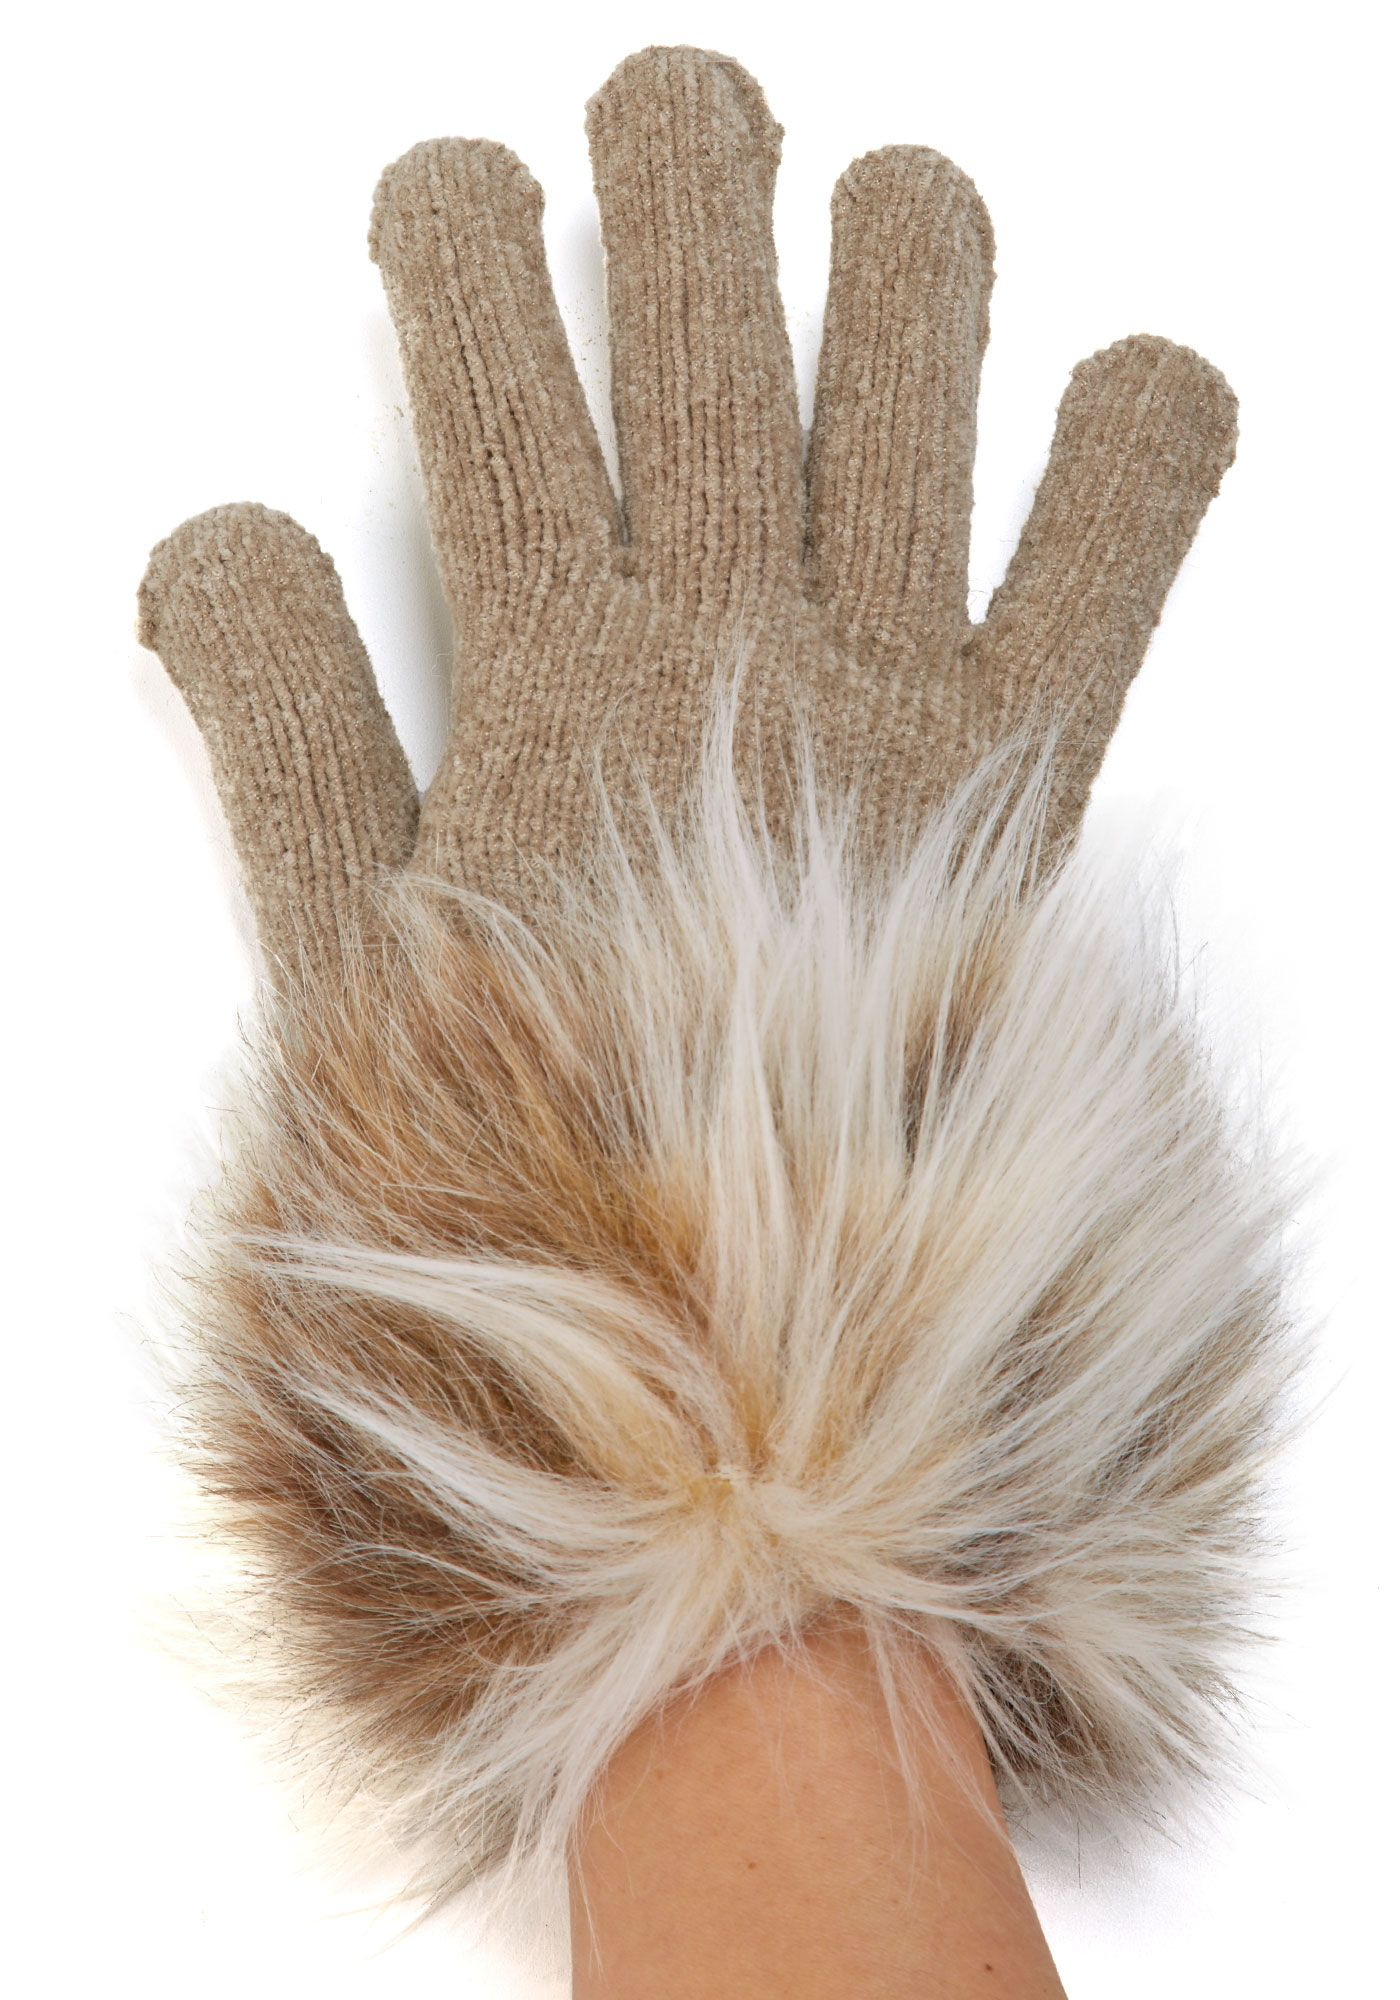 81b64f337644 Faux fur trimmed gloves in all colors - Bridesmaid gift perhaps   29 ...